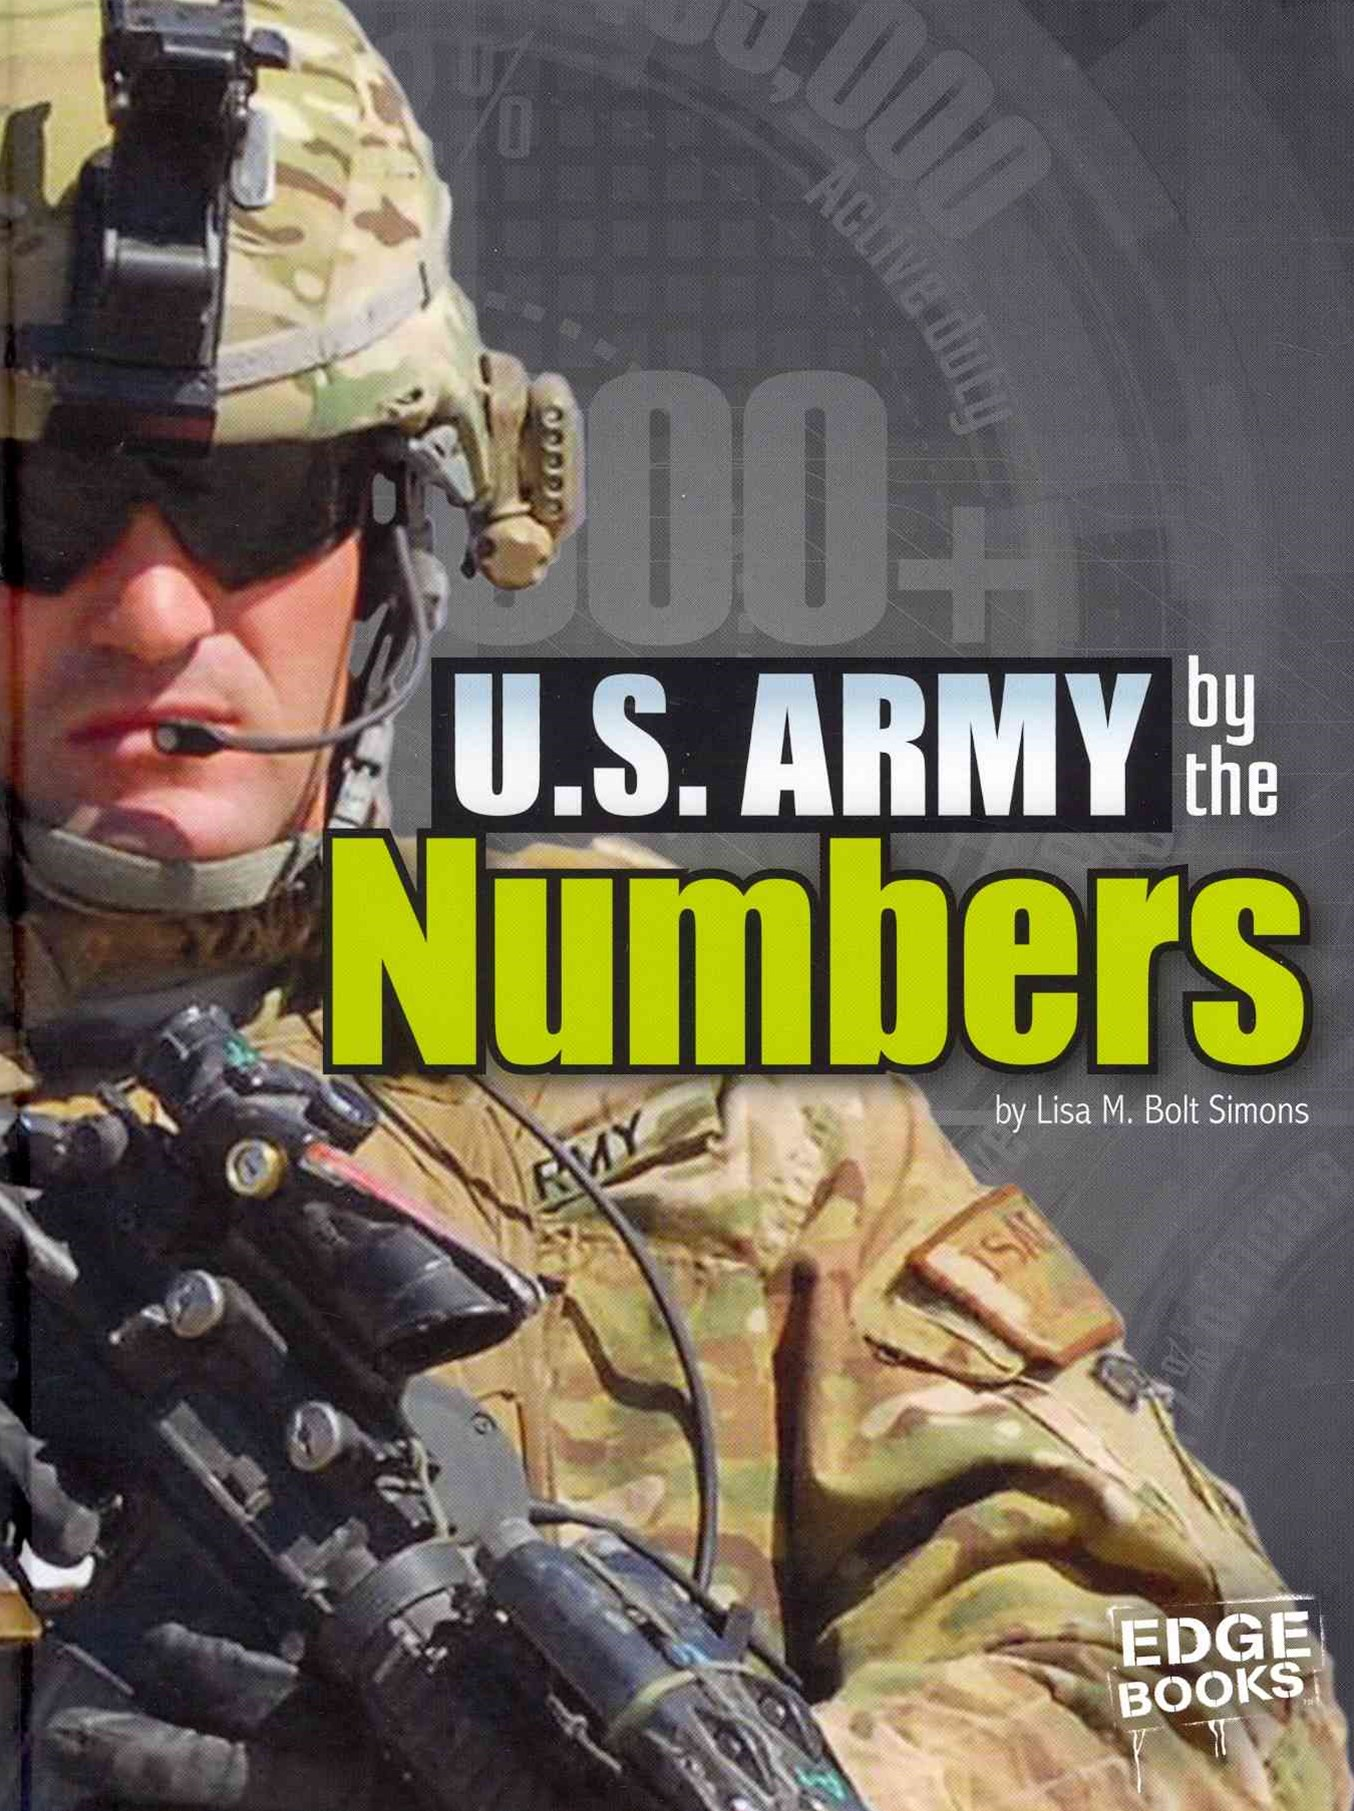 U. S. Army by the Numbers